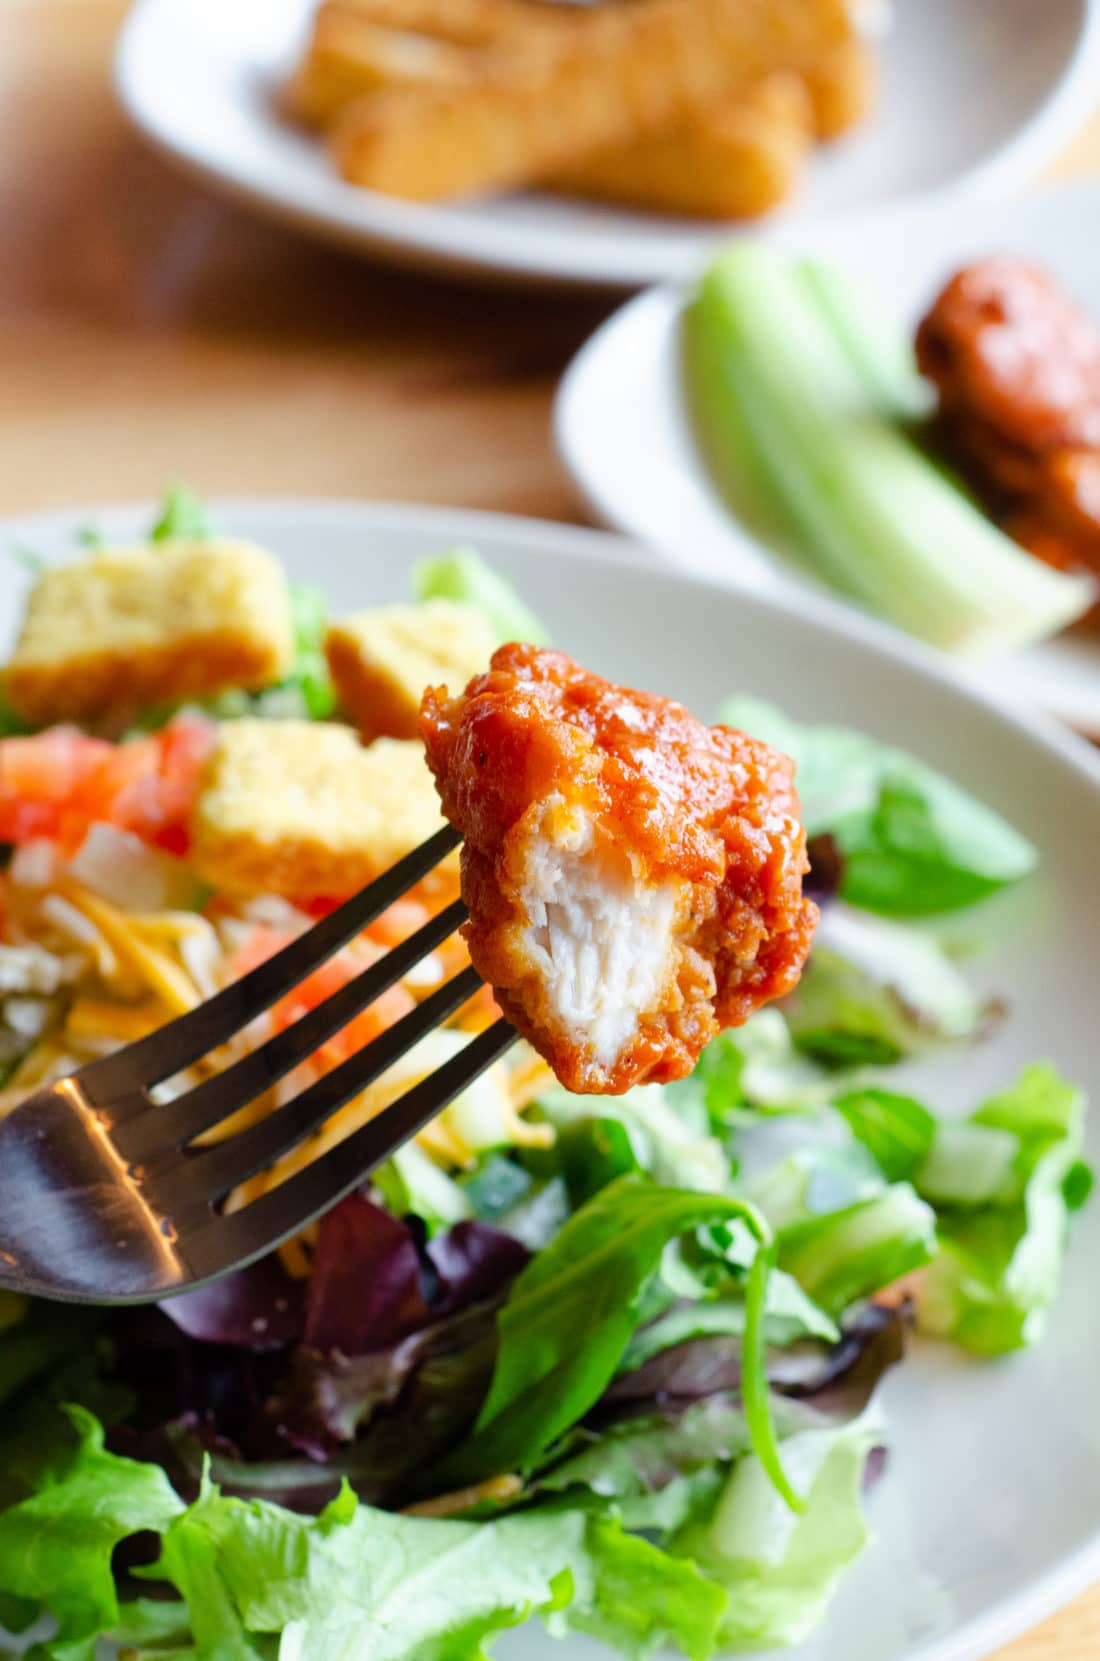 Buffalo Chicken on fork in front of Garden Salad at Applebee's. Take advantage of the Applebee's Delicious New Three-Course Meal's Starting at $12.